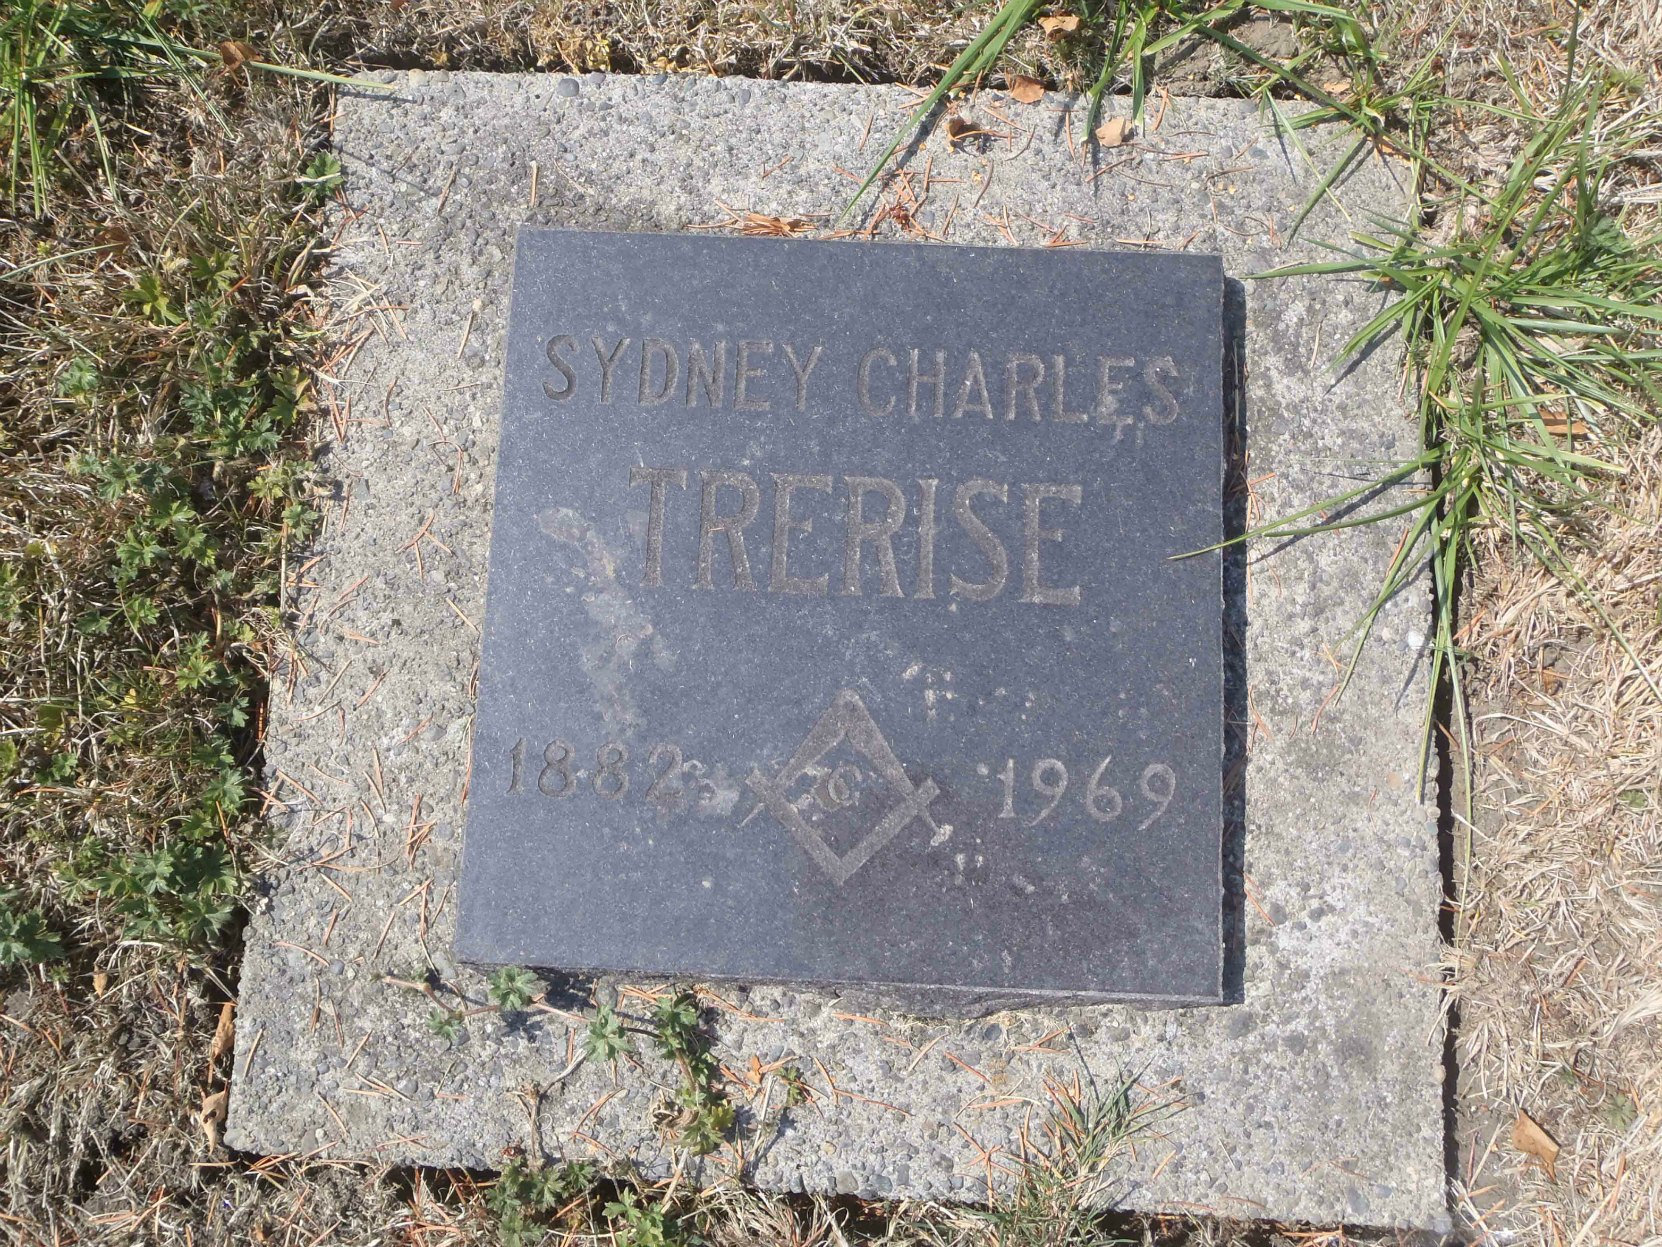 Sydney Charles Trerise grave marker, Holy Trinity Anglican cemetery, North Saanich, B.C.